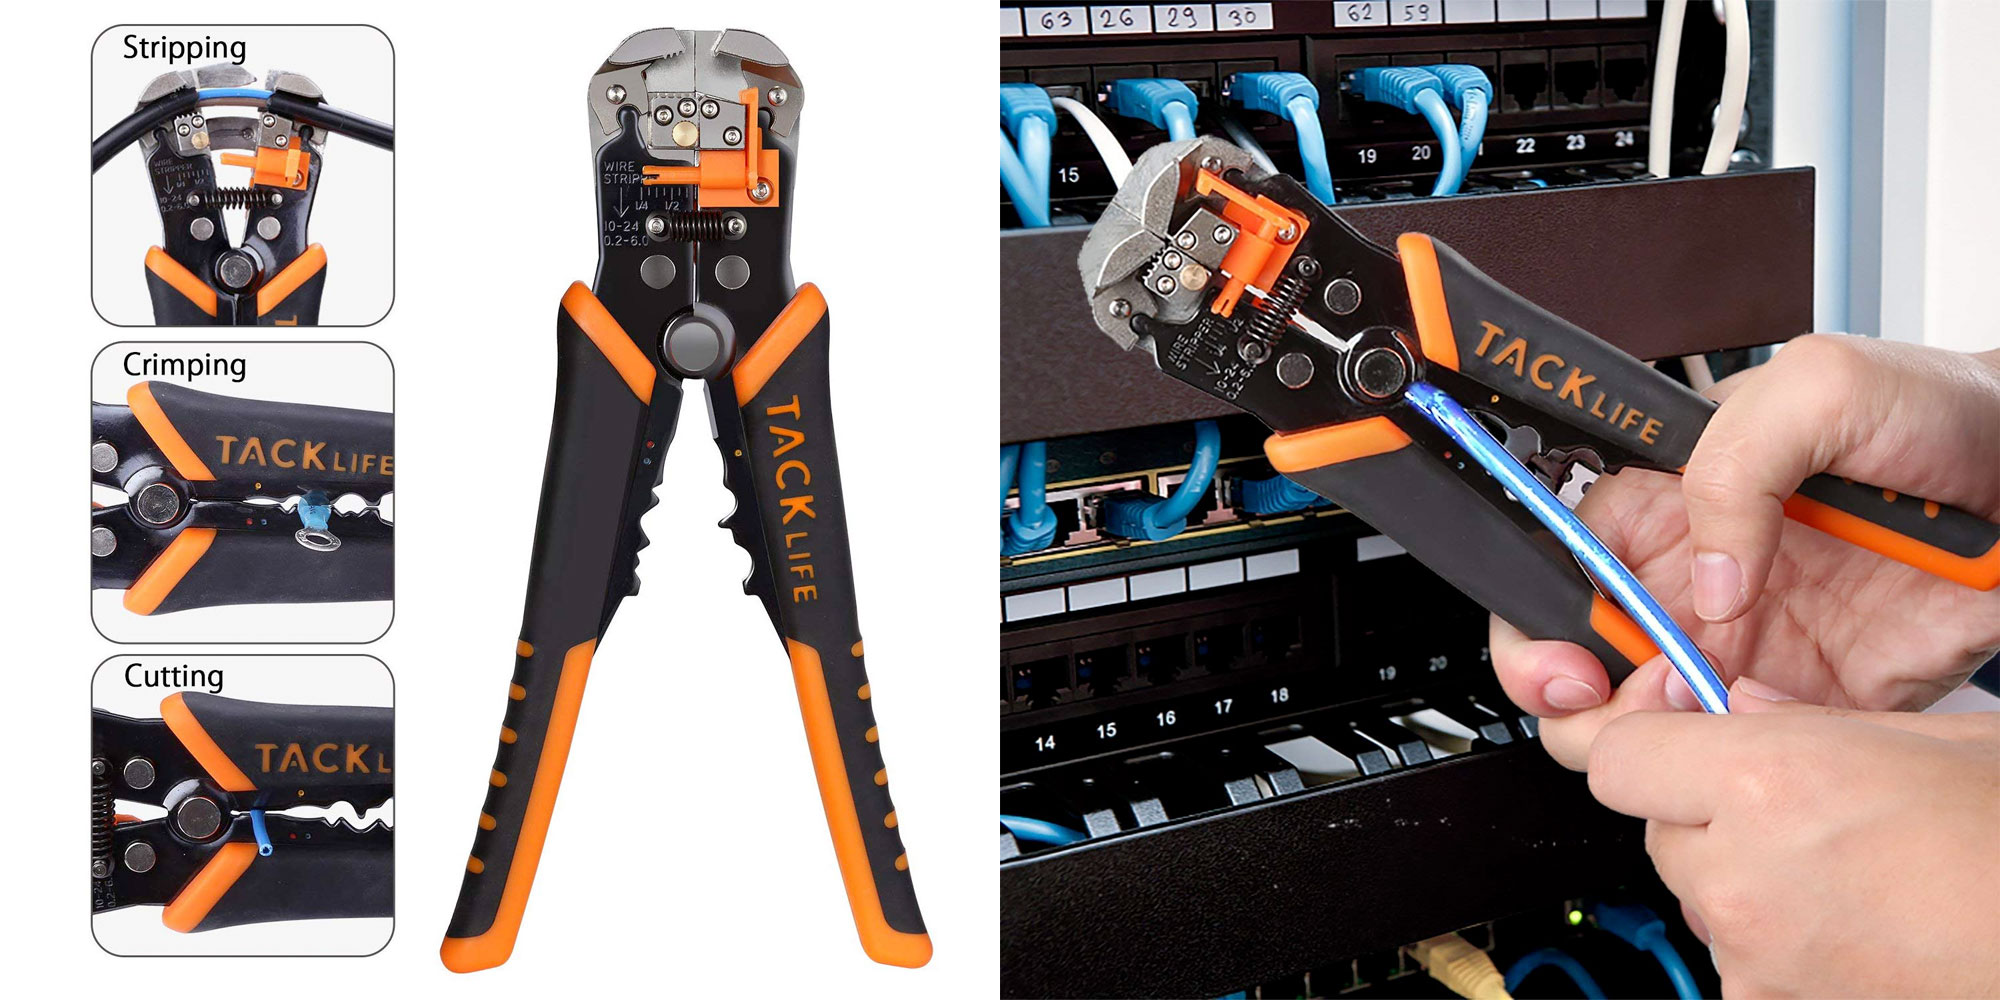 Strip, cut, and crimp your own Ethernet cables & more w/ this all-in-one tool for just $9